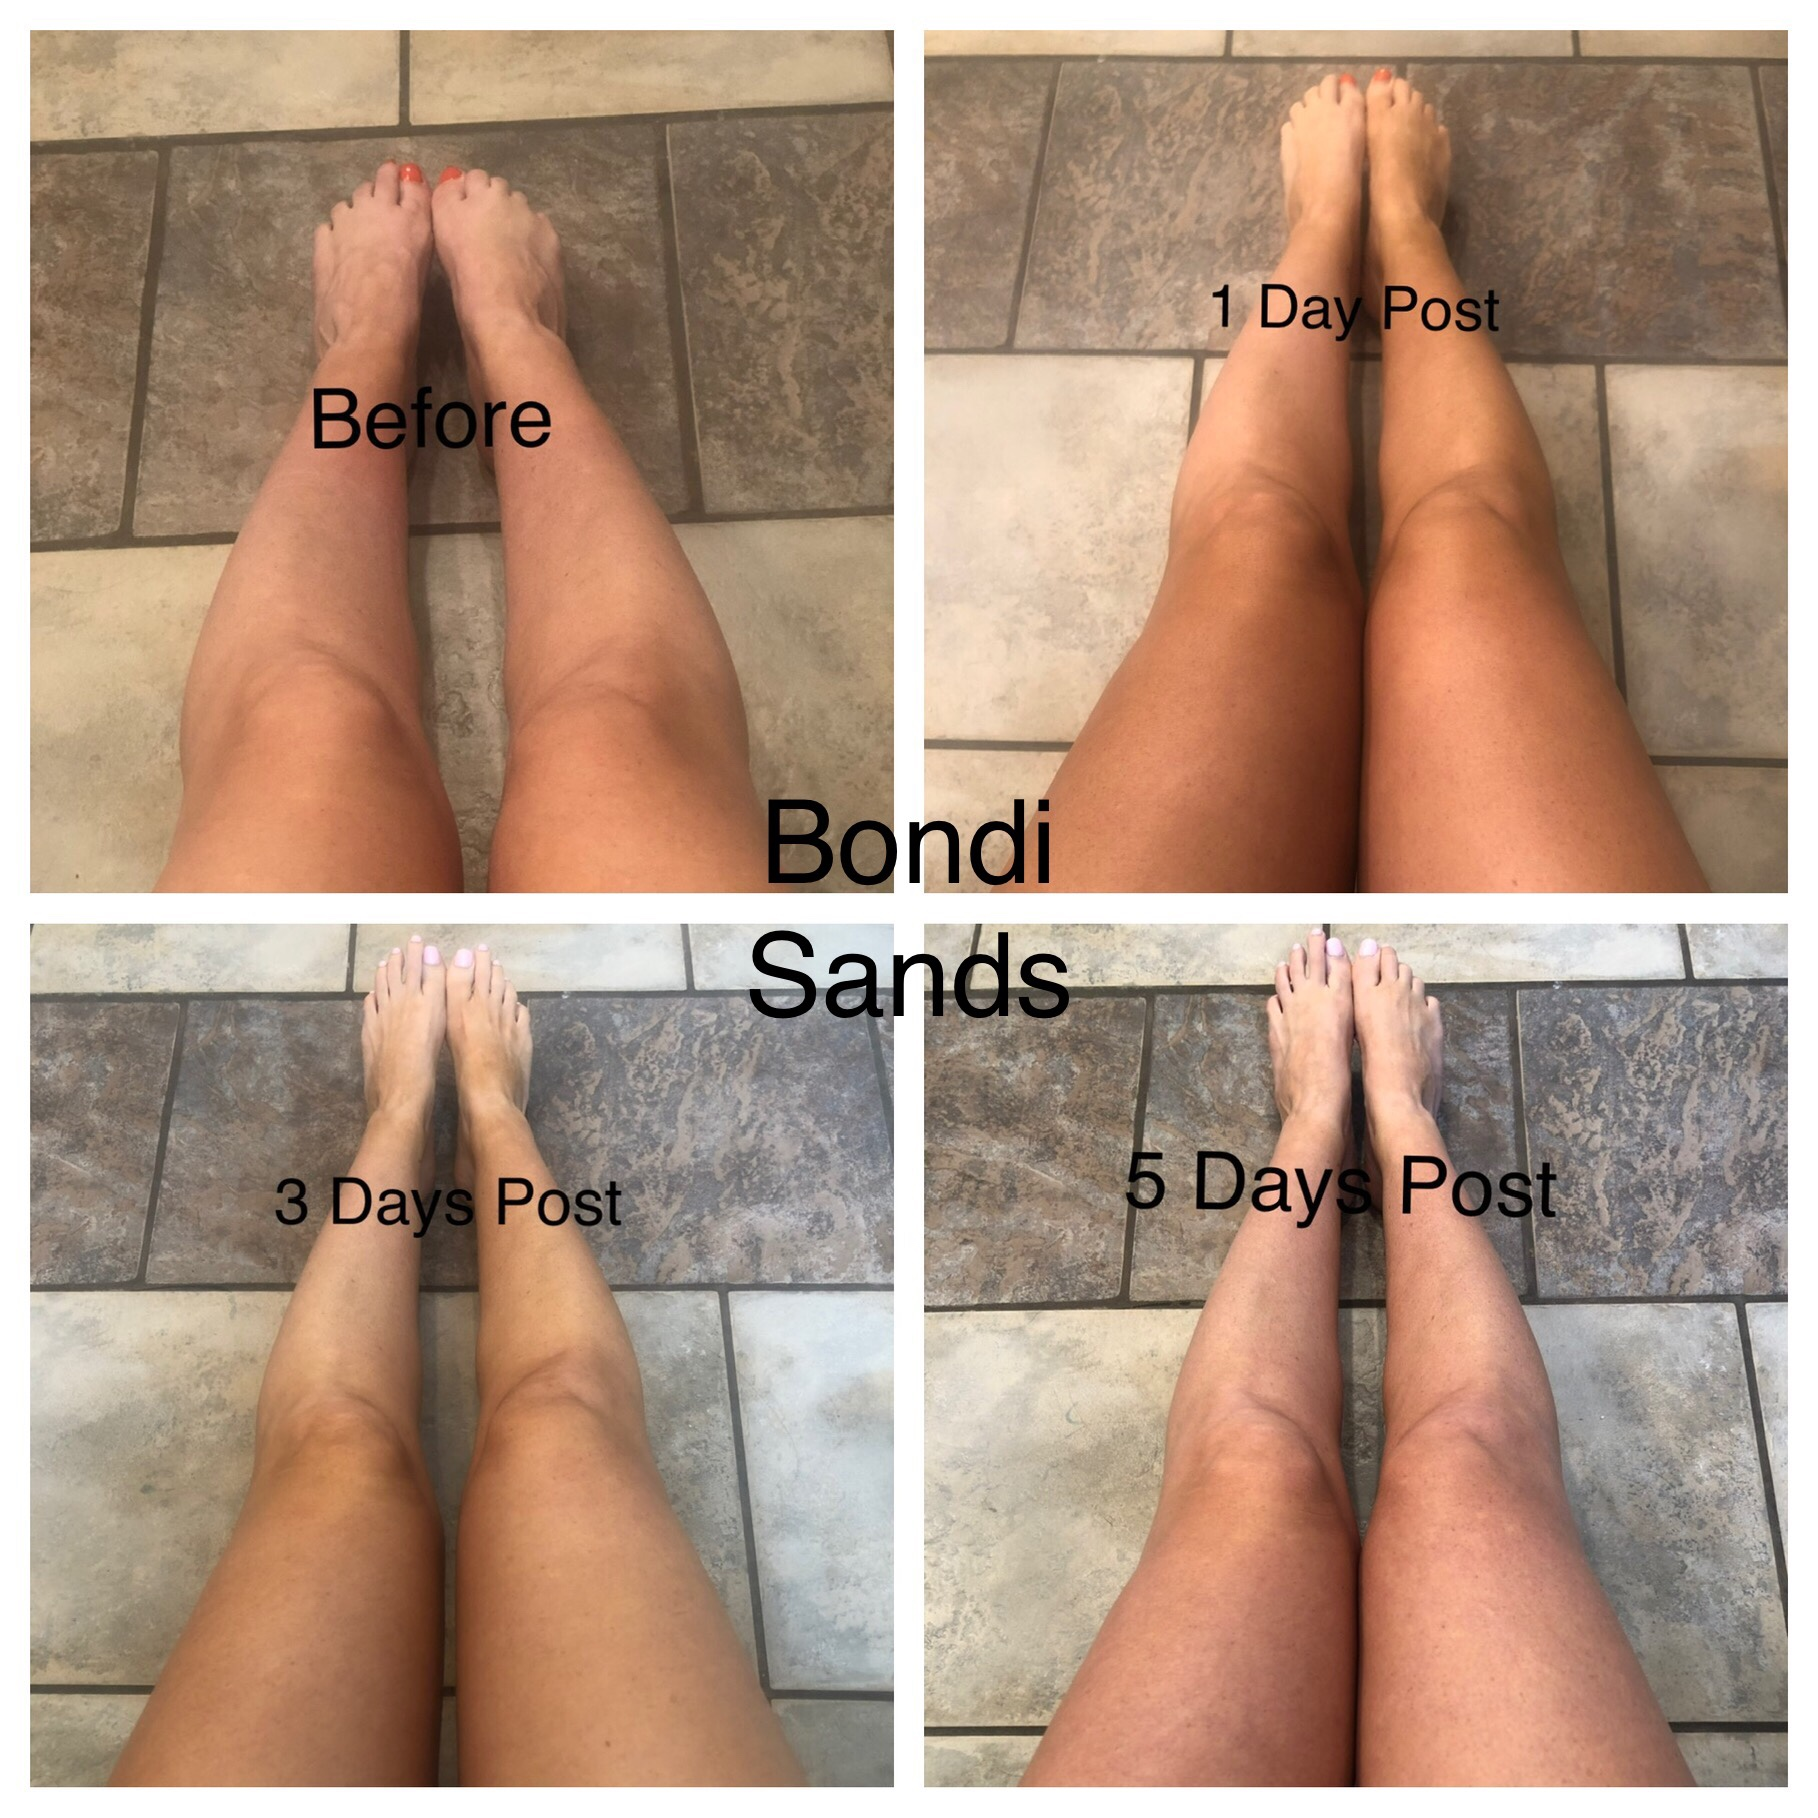 Bondi Sands Post Tan Pictures